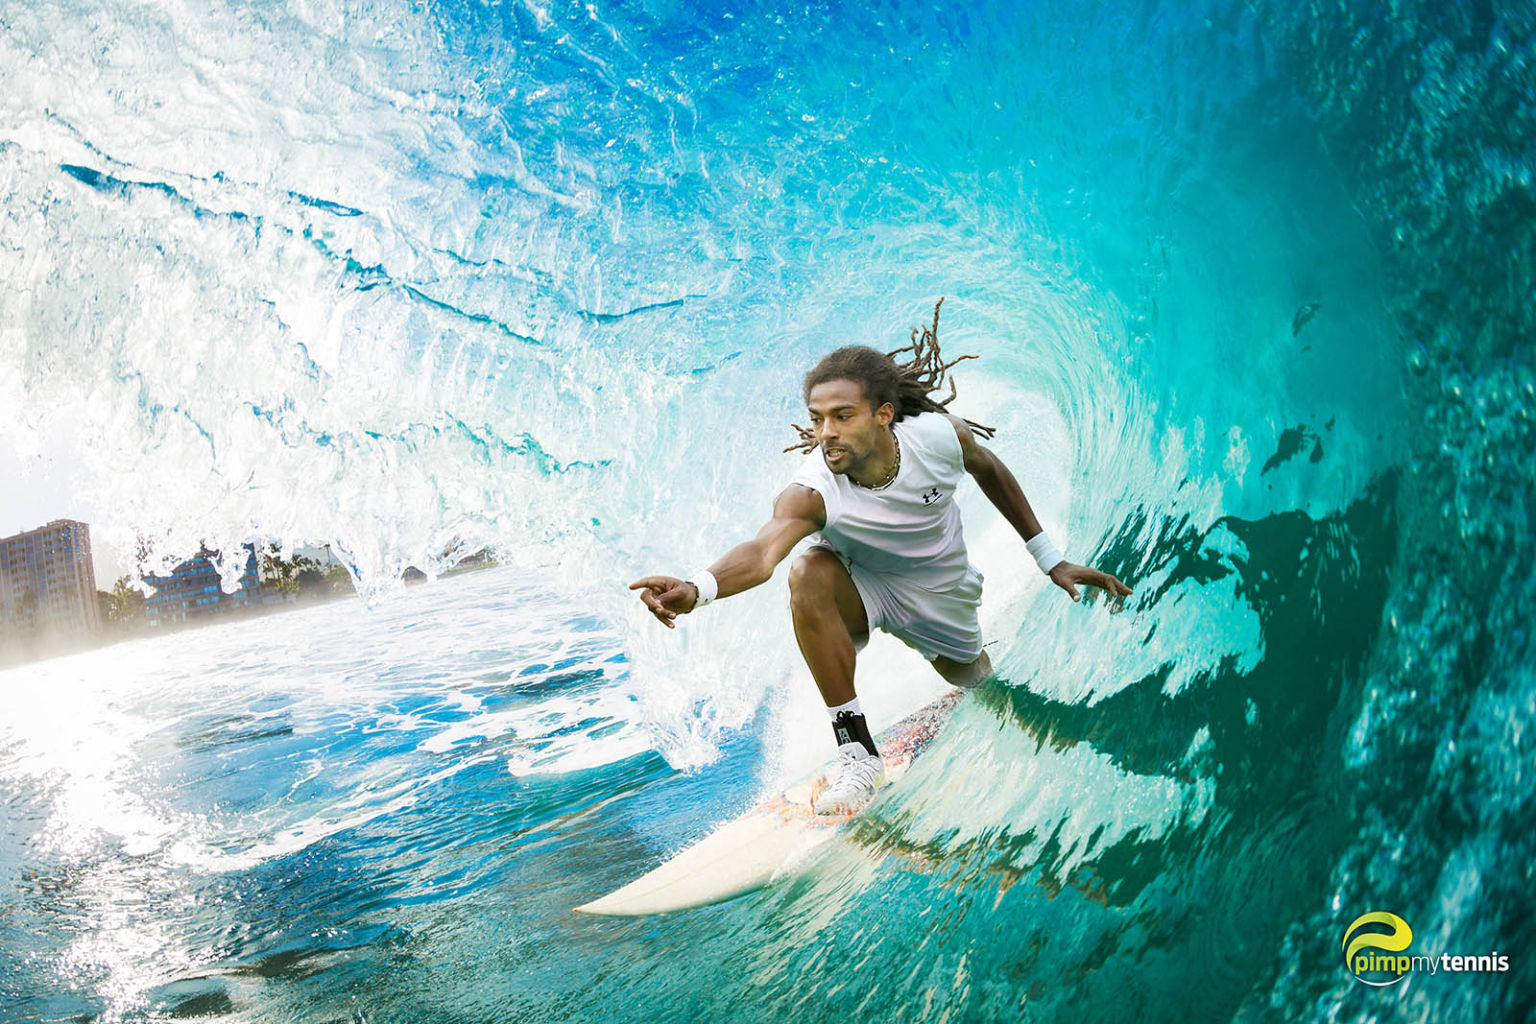 Dustin.Brown_High.on.the.wave_Rastapower_M.jpg http://pimpmytennis.com/dustin-brown-high-wave/